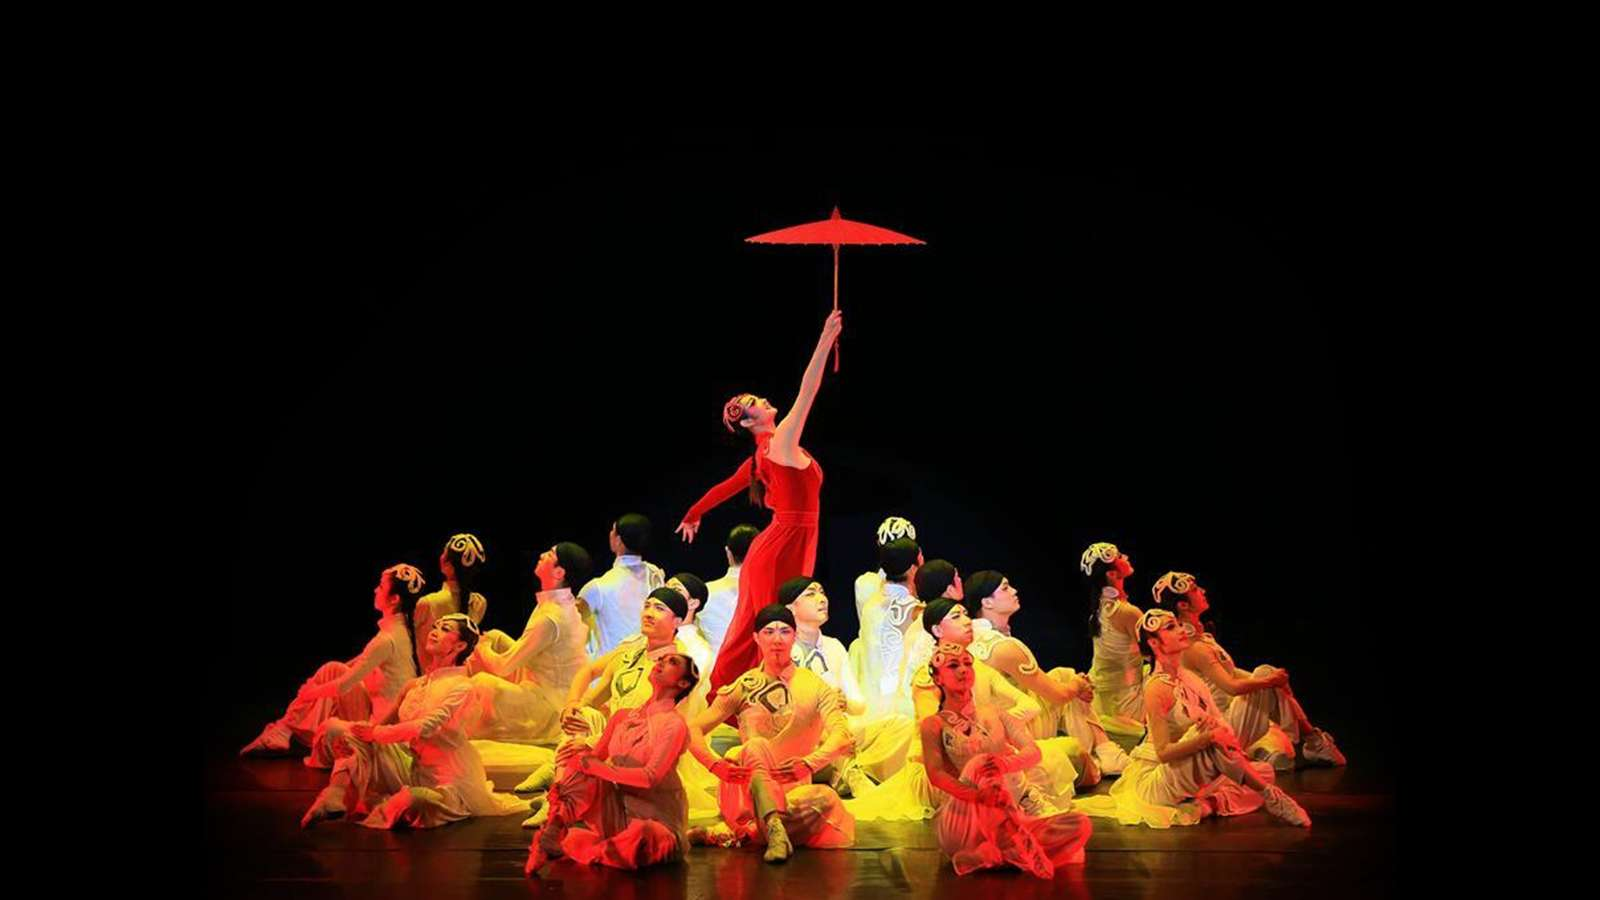 Shen Yun Performing Arts (Rescheduled from 1/13/2021)